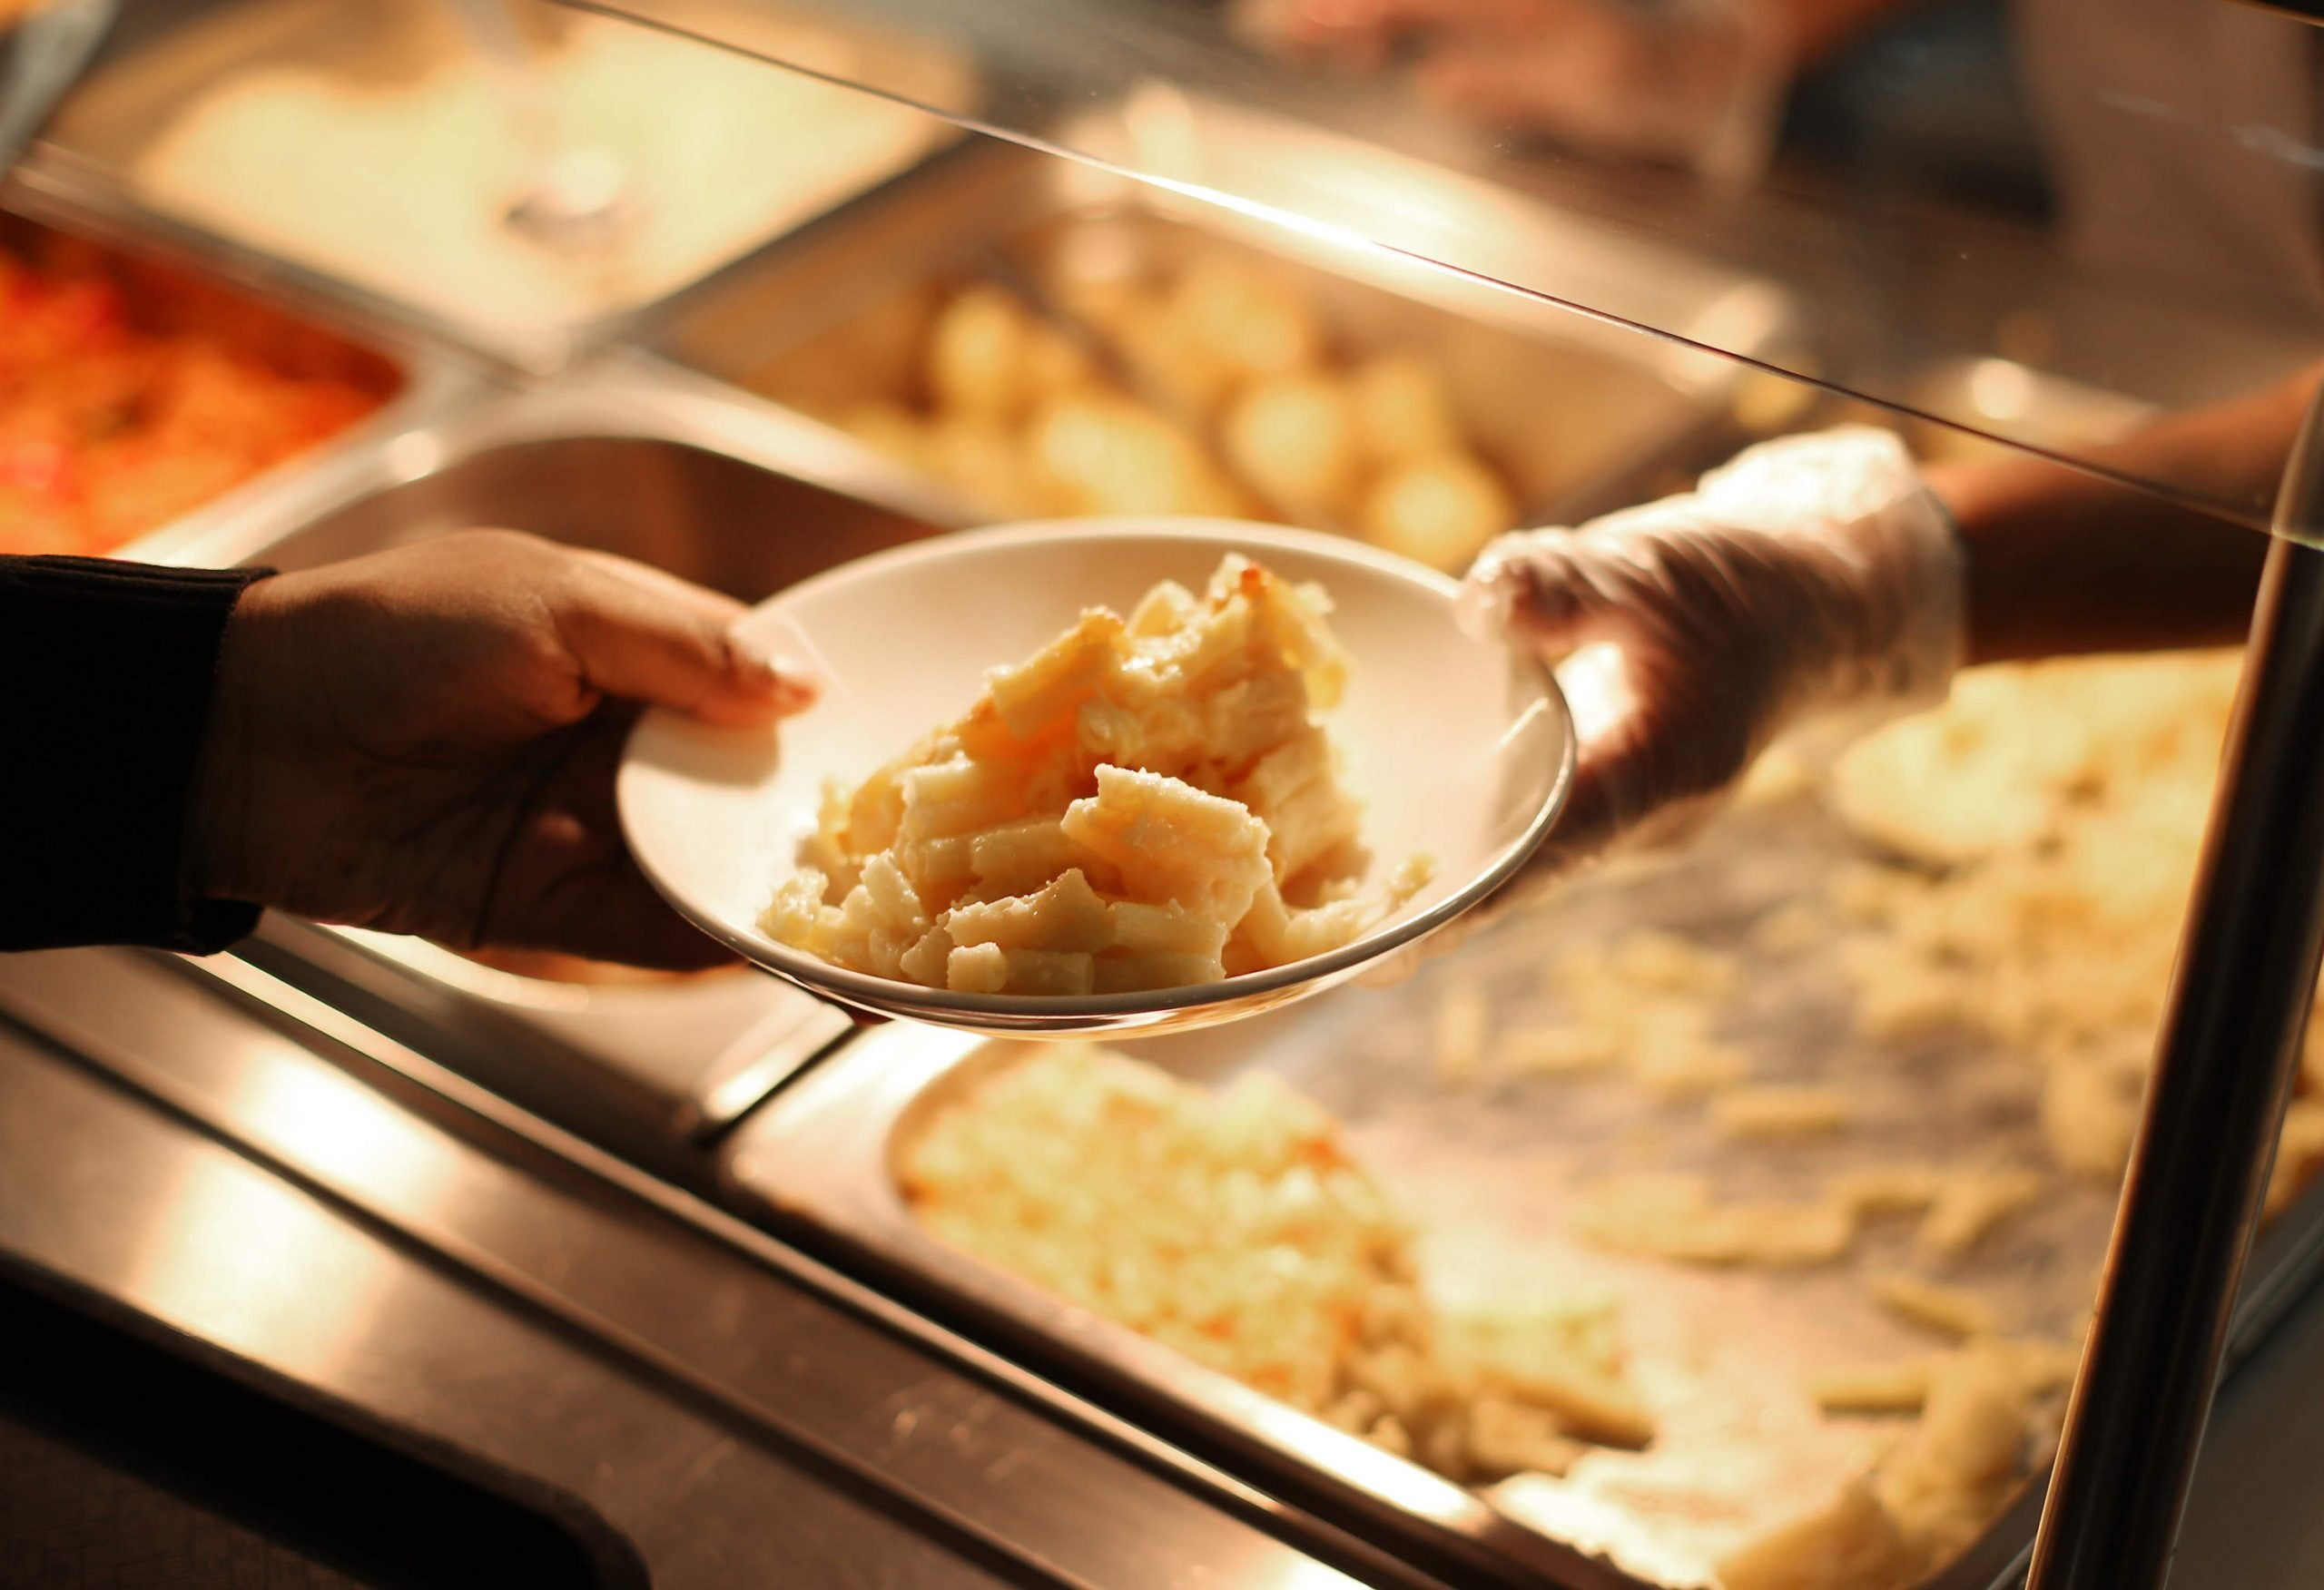 Want to end cruel lunch isolation policies? Make school meals free for all